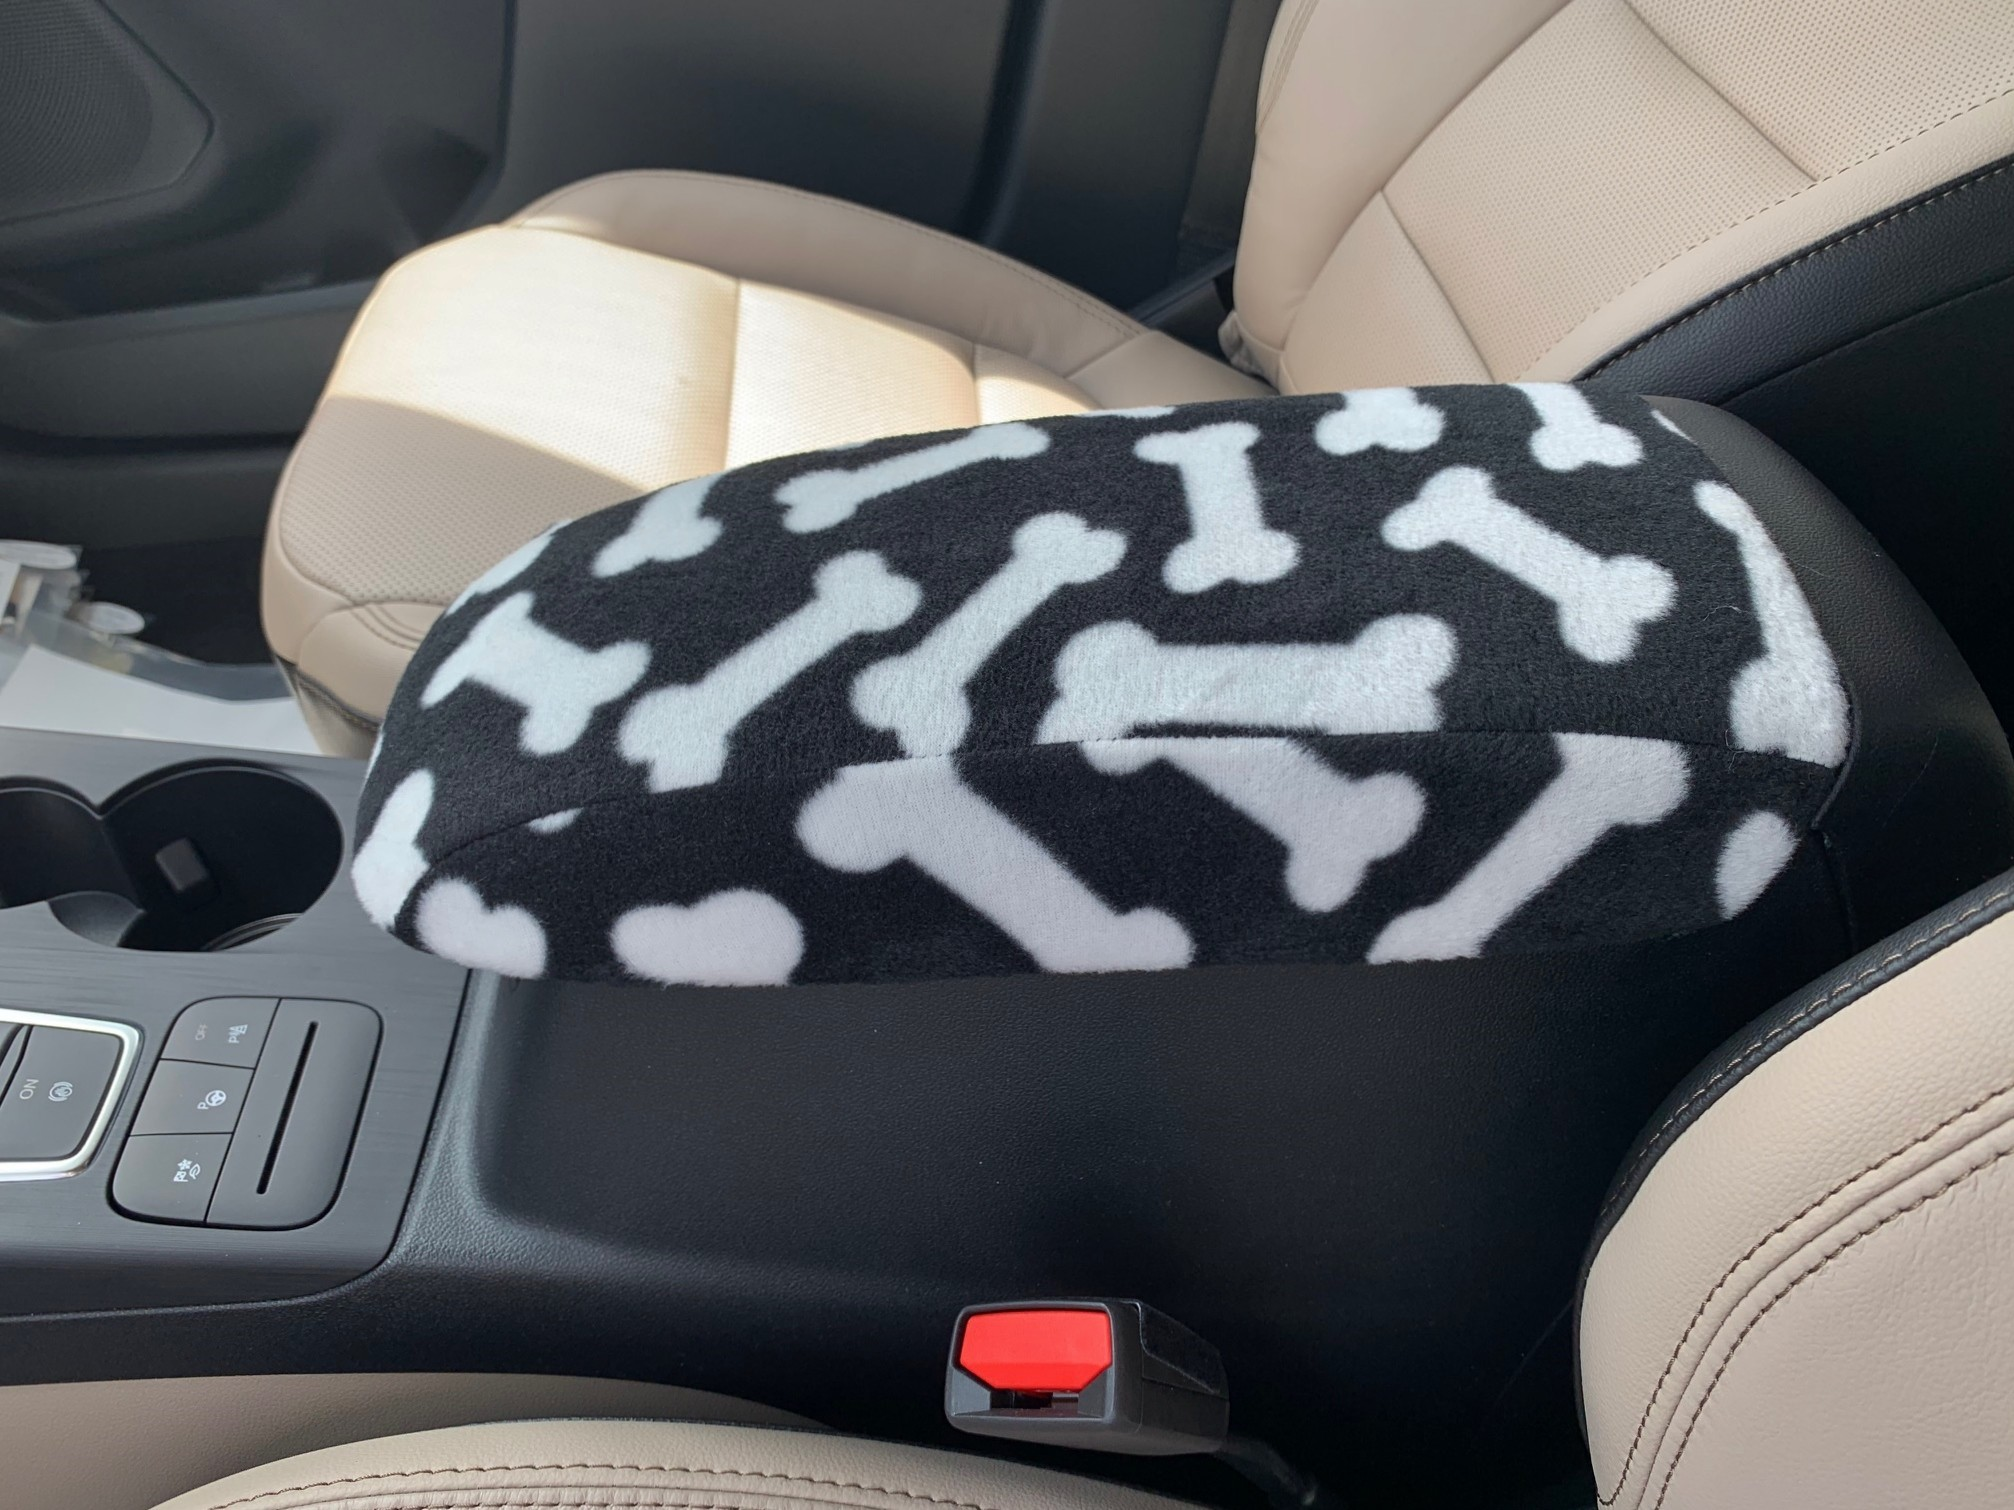 Buy Fleece Center Console Armrest Cover fits the Ford Escape 2020-2021